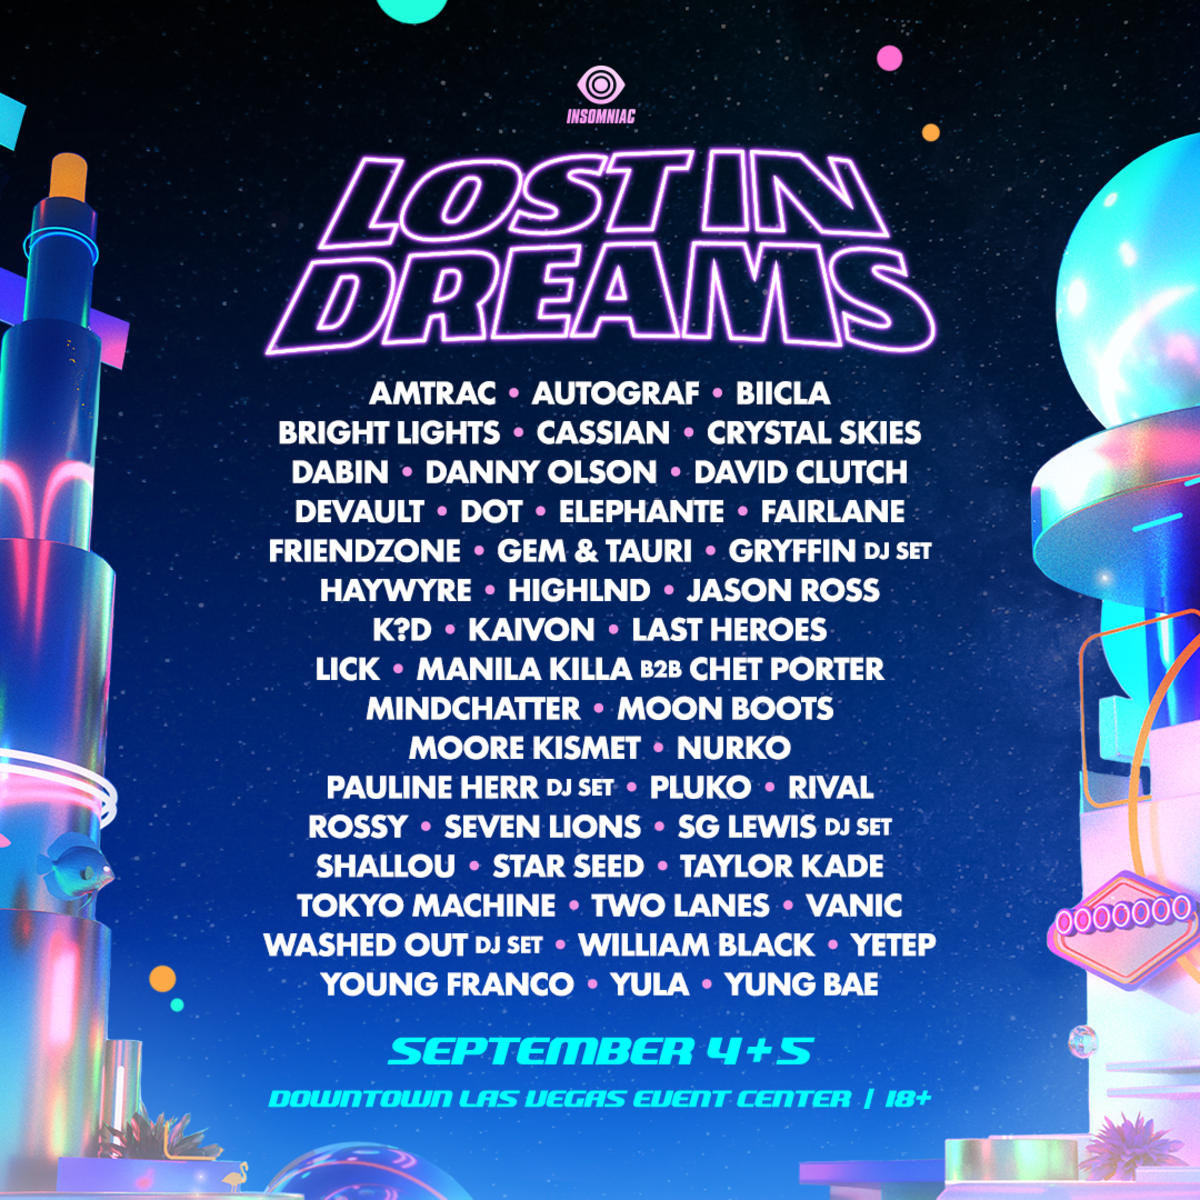 Flyer for Insomniac Events' first-ever Lost In Dreams Music Festival in Las Vegas.